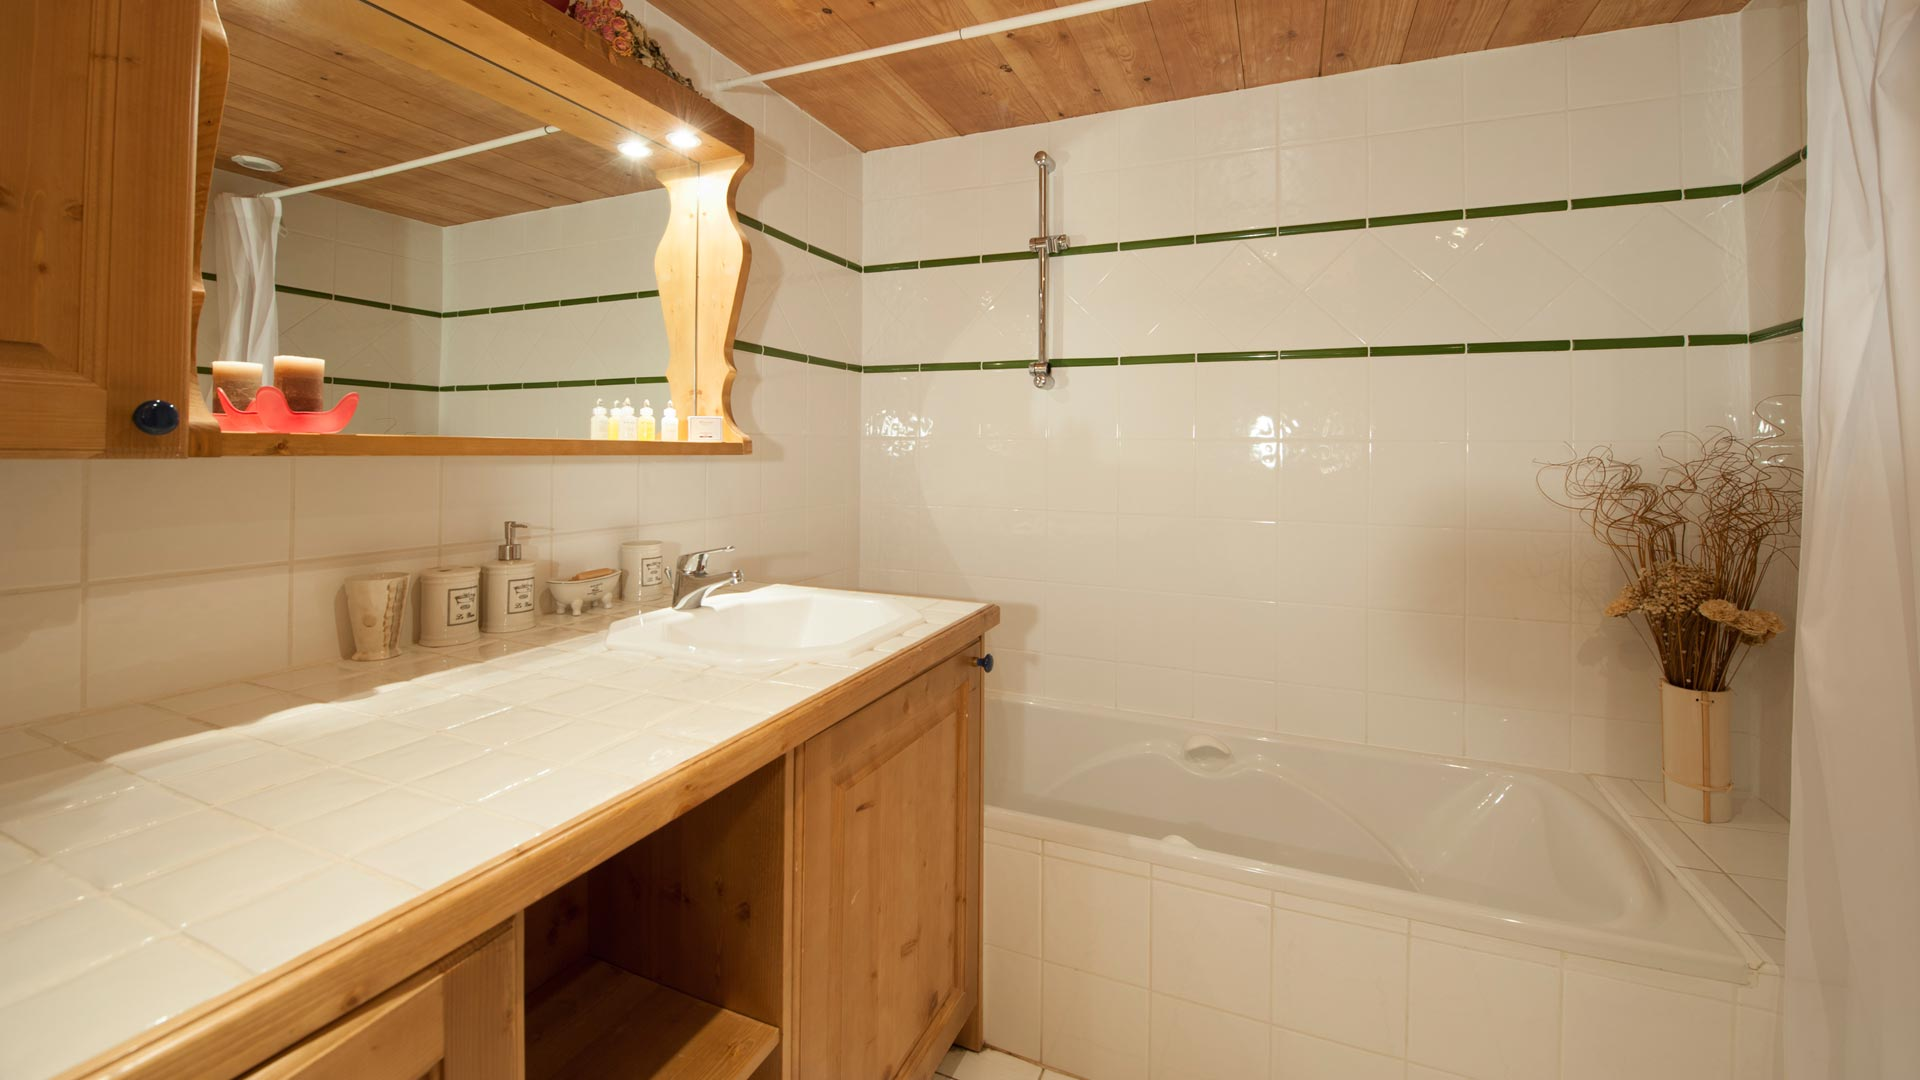 Bathroom in Sainte Foy Apt. in Ste Foy